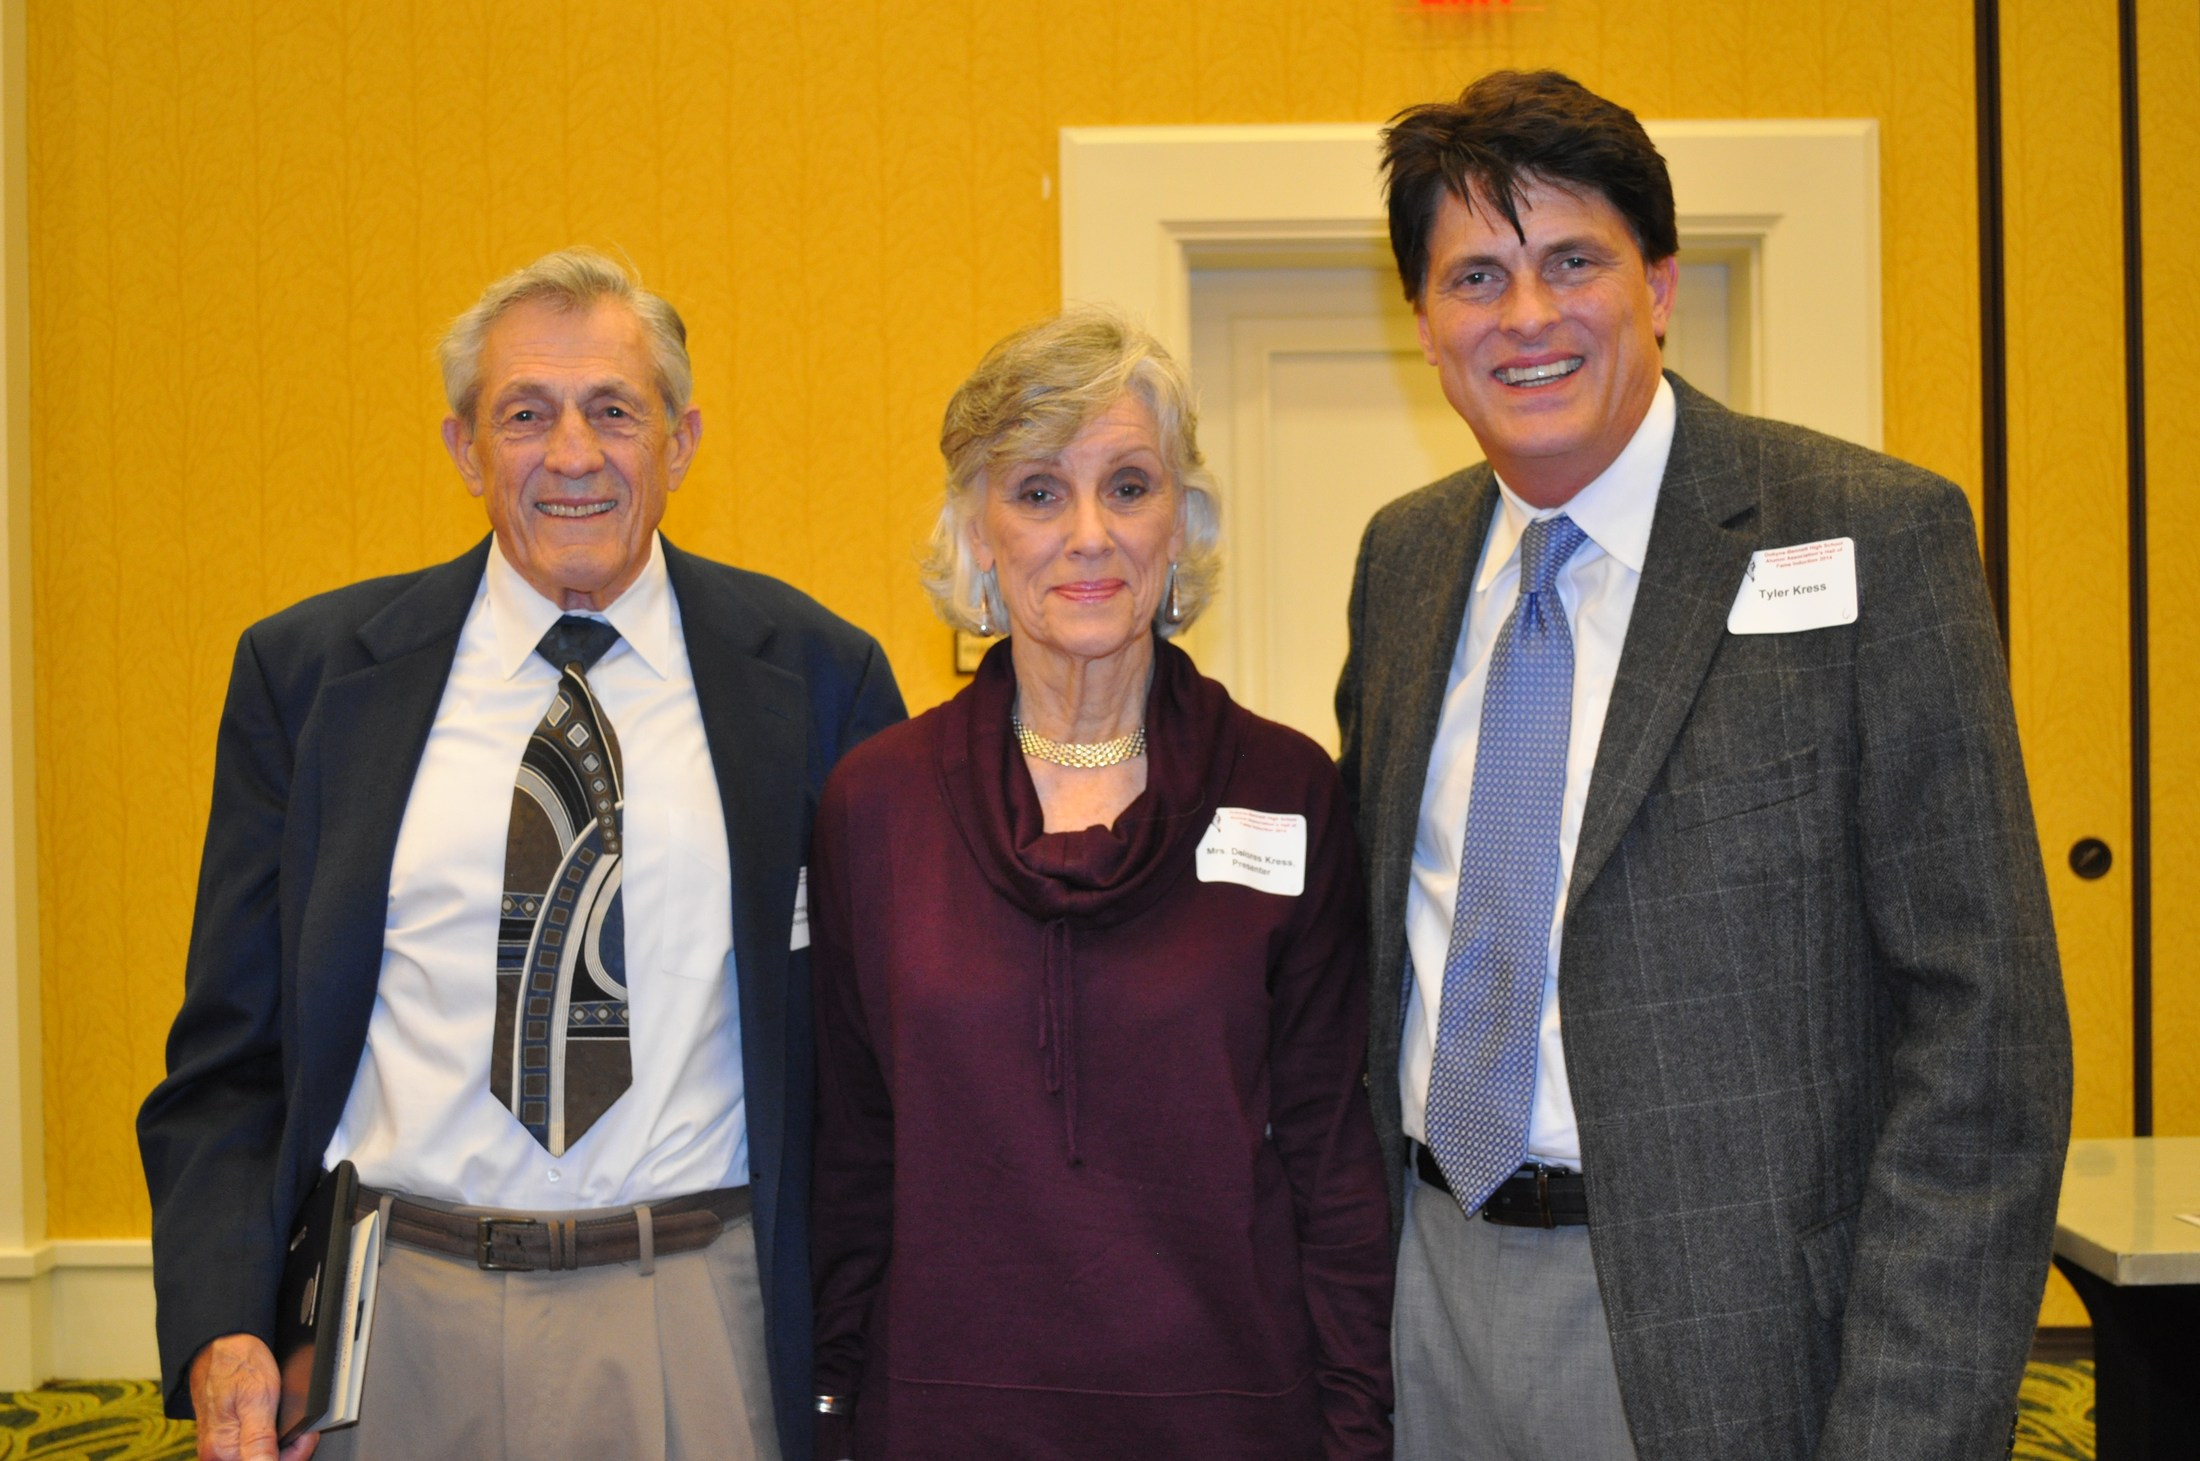 2014 Induction Ceremony: Dr. Thomas S. Kress and Family